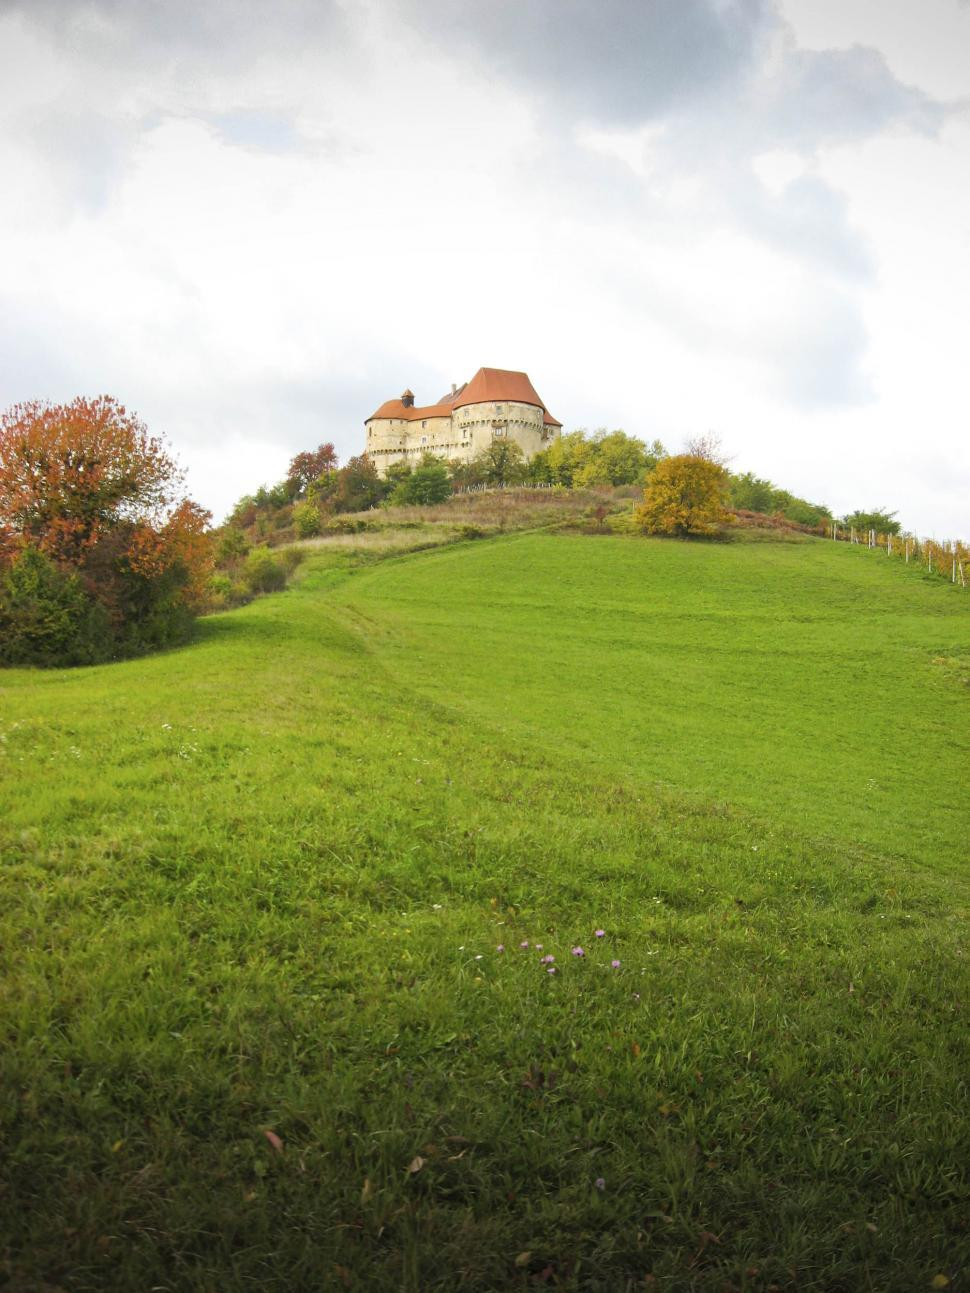 Download Free Stock HD Photo of castle on a hill of green Online